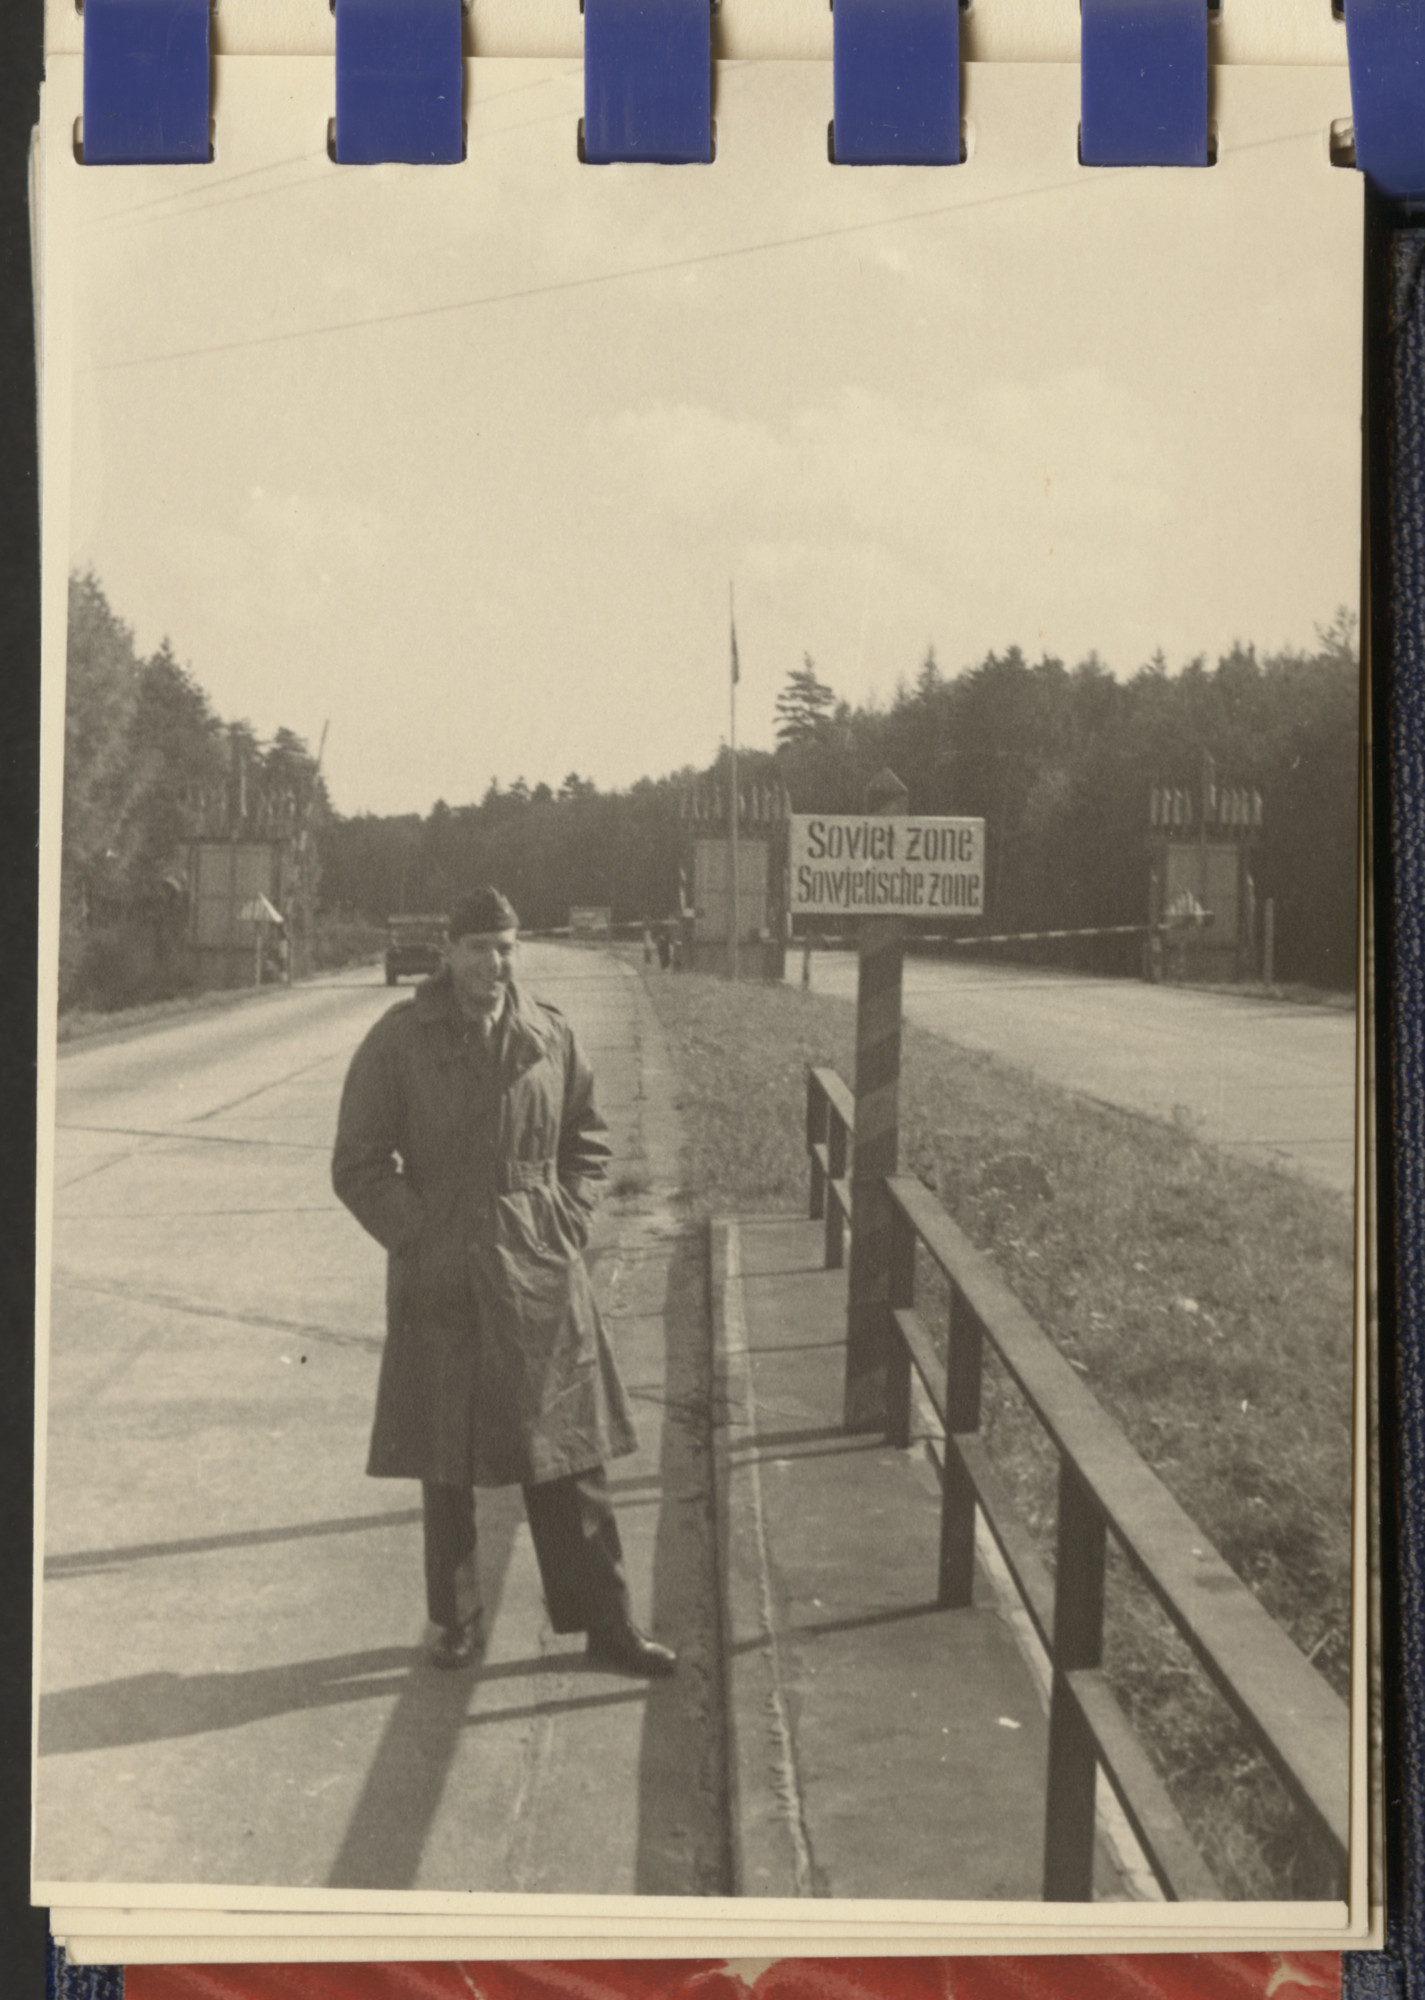 One page from a small photograph booklet containing images of Bergen-Belsen shortly after liberation.  A British [?] soldier poses by a sign indicating the Soviet zone.